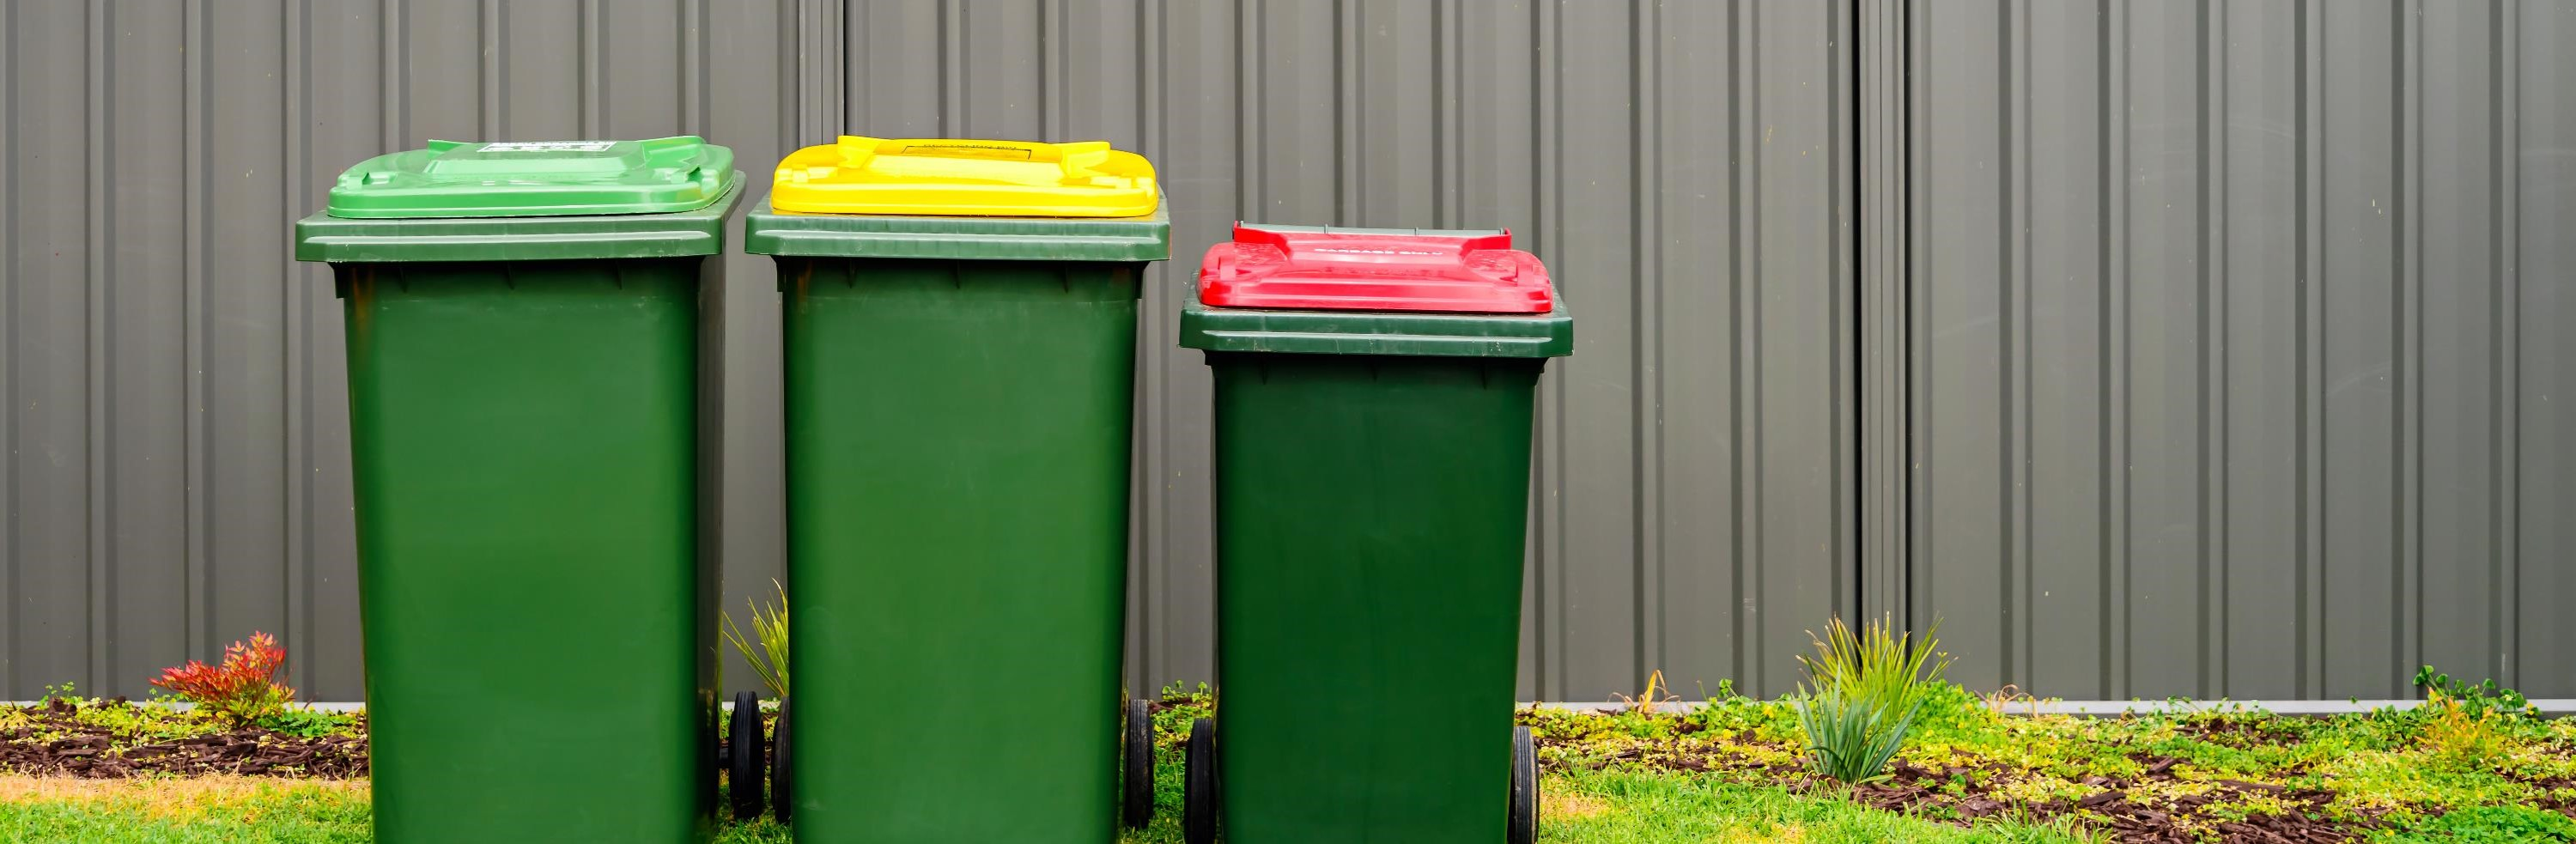 Waste services in Australia